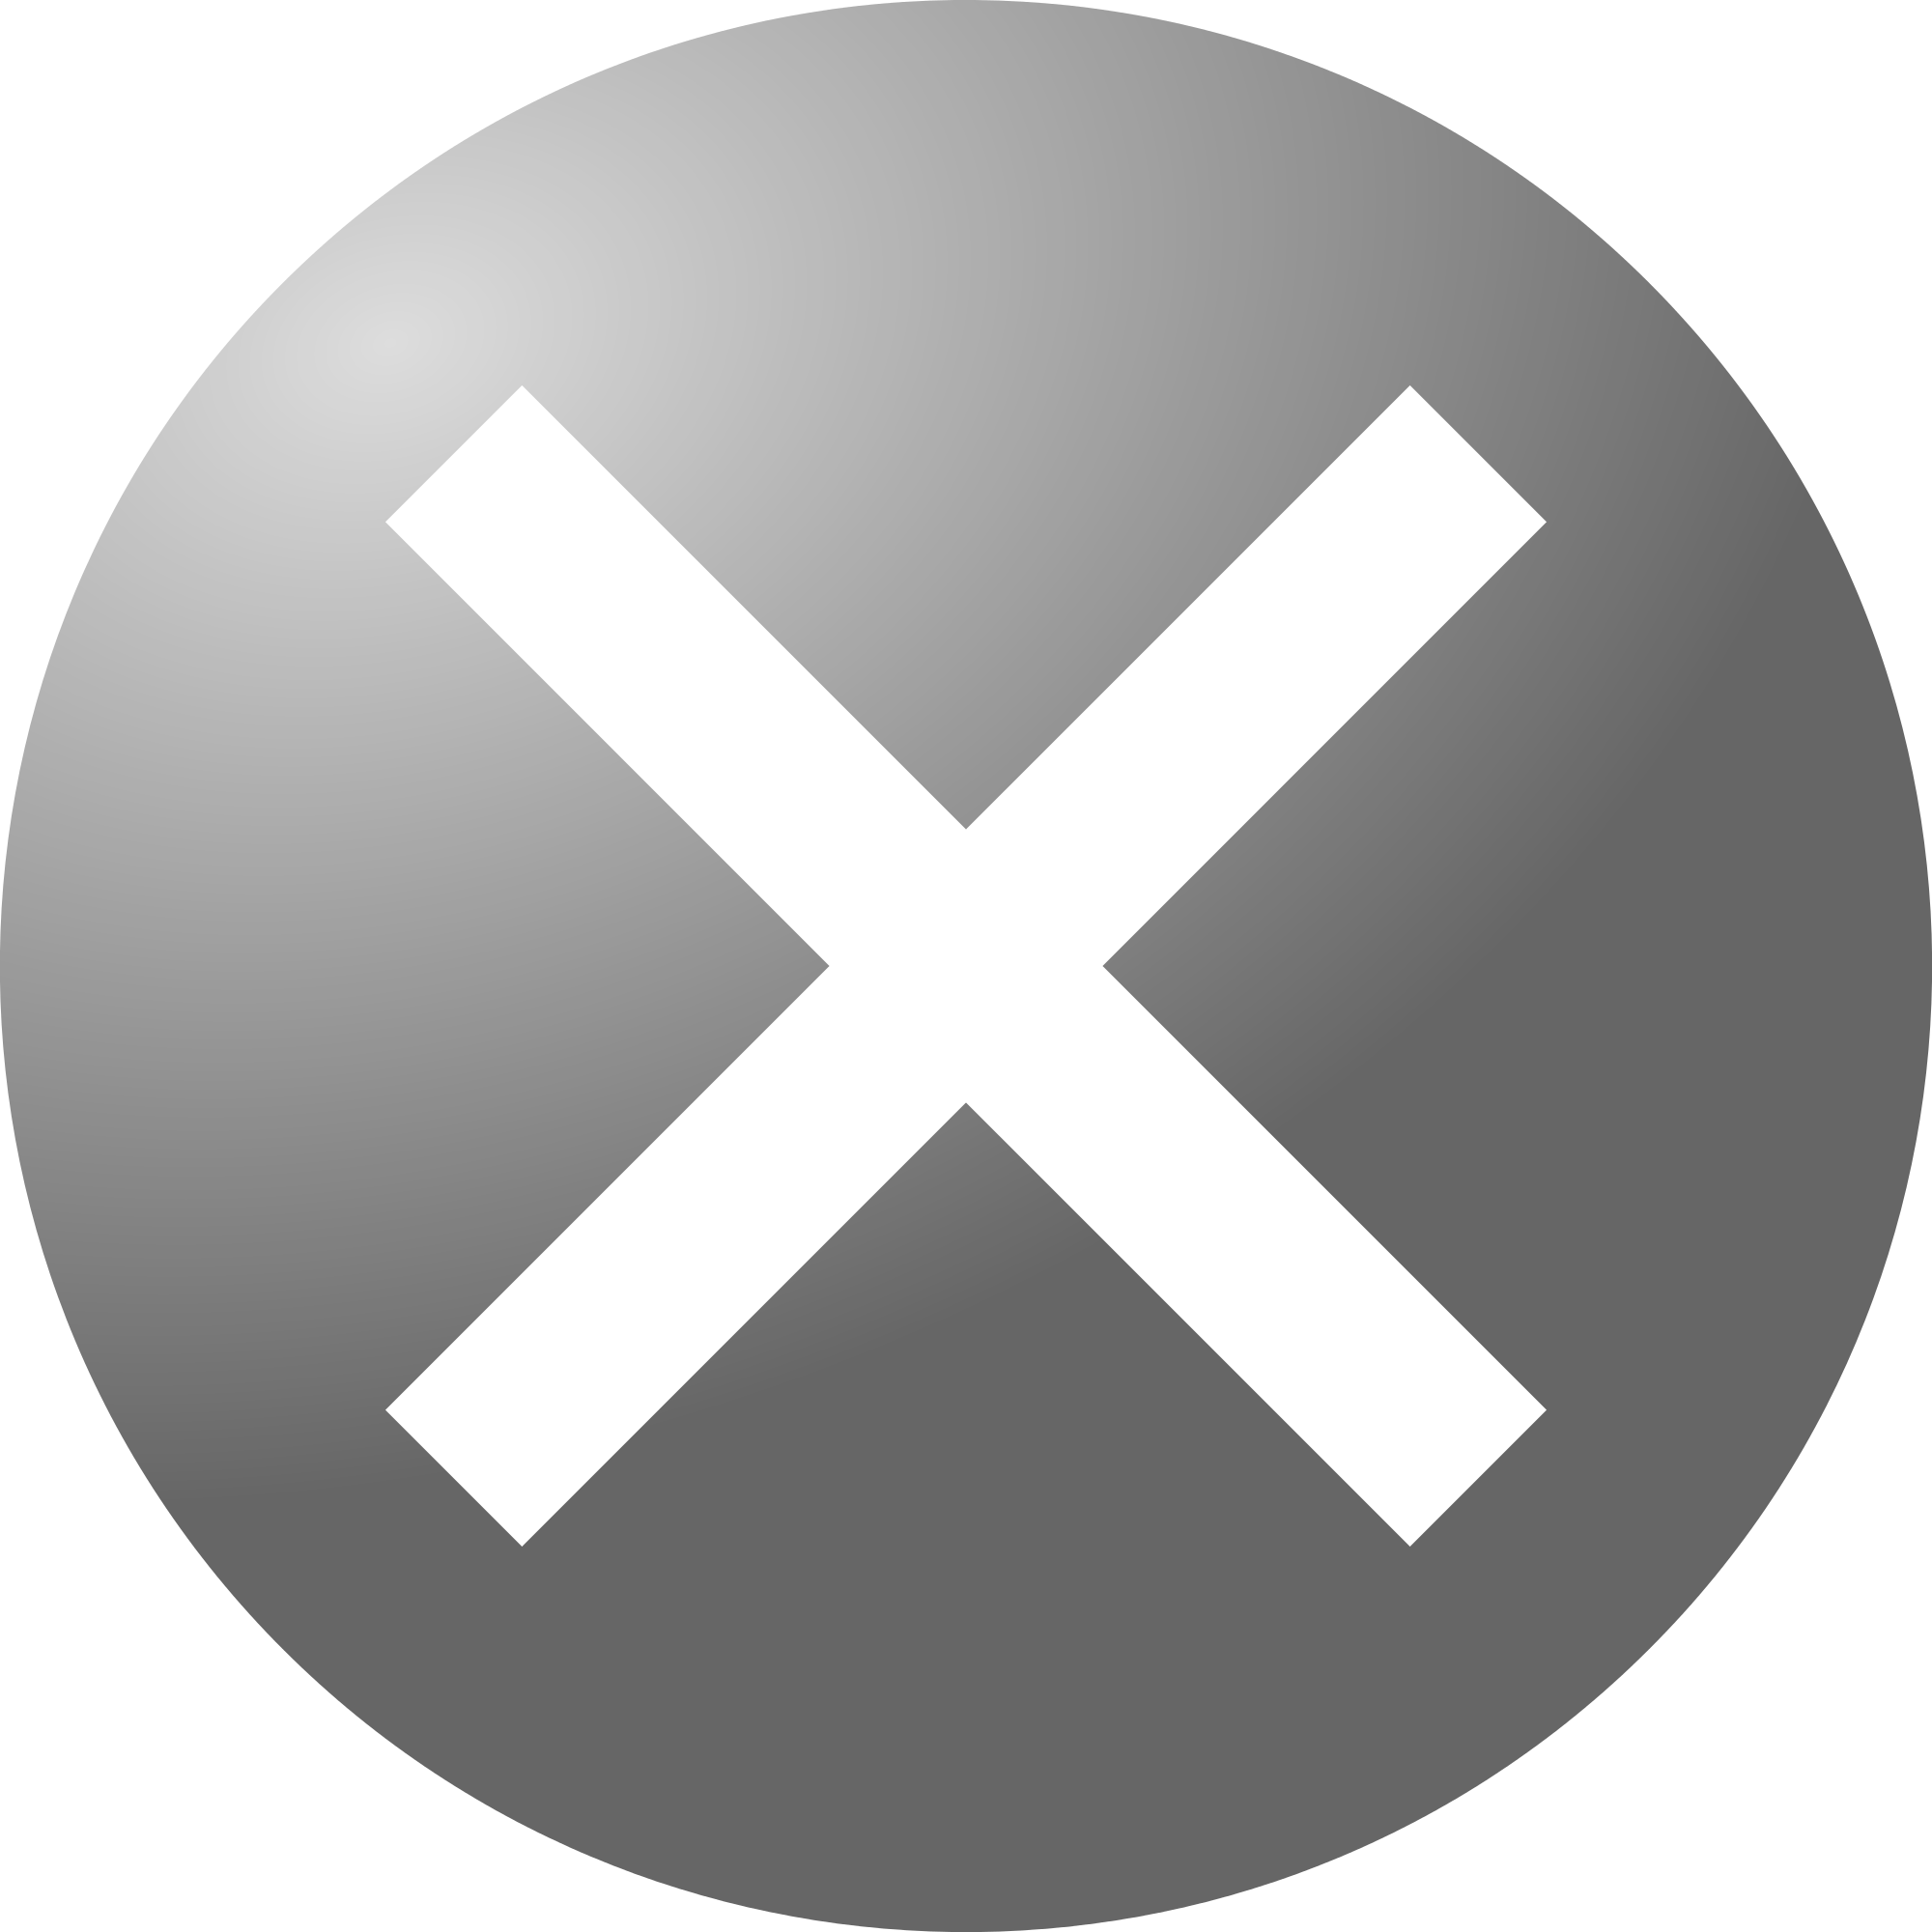 Svg hover button. File wikimedia commons open